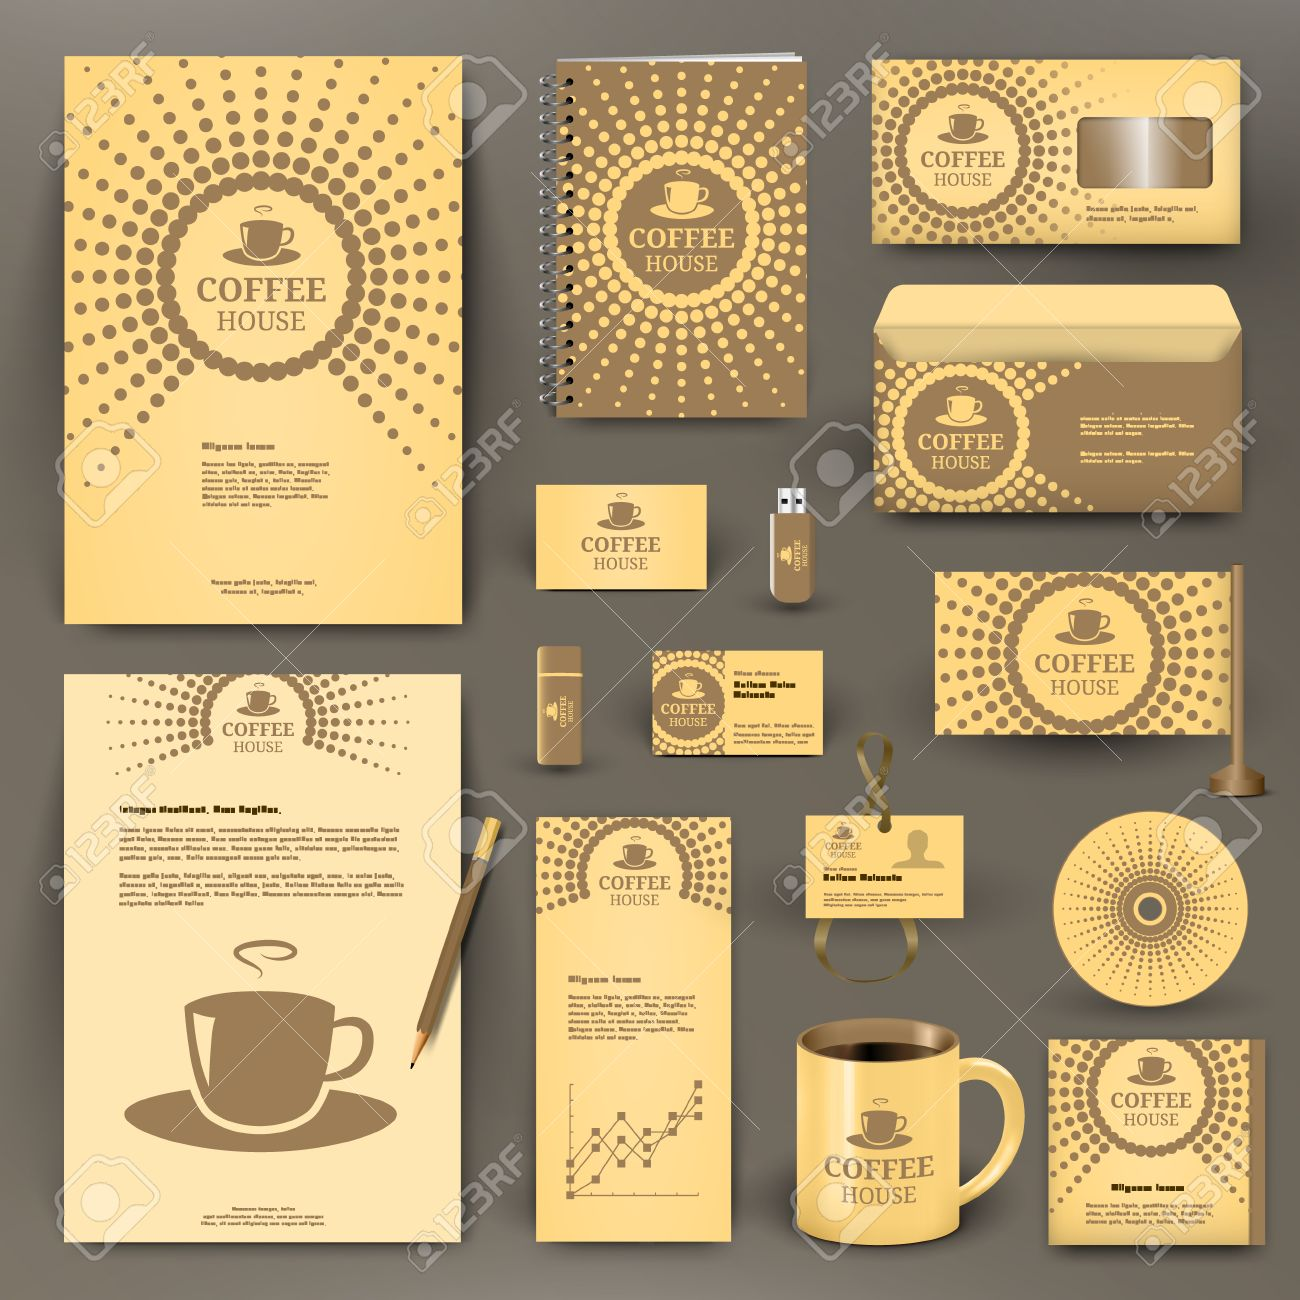 beige branding design for coffee shop, coffee house, cafe